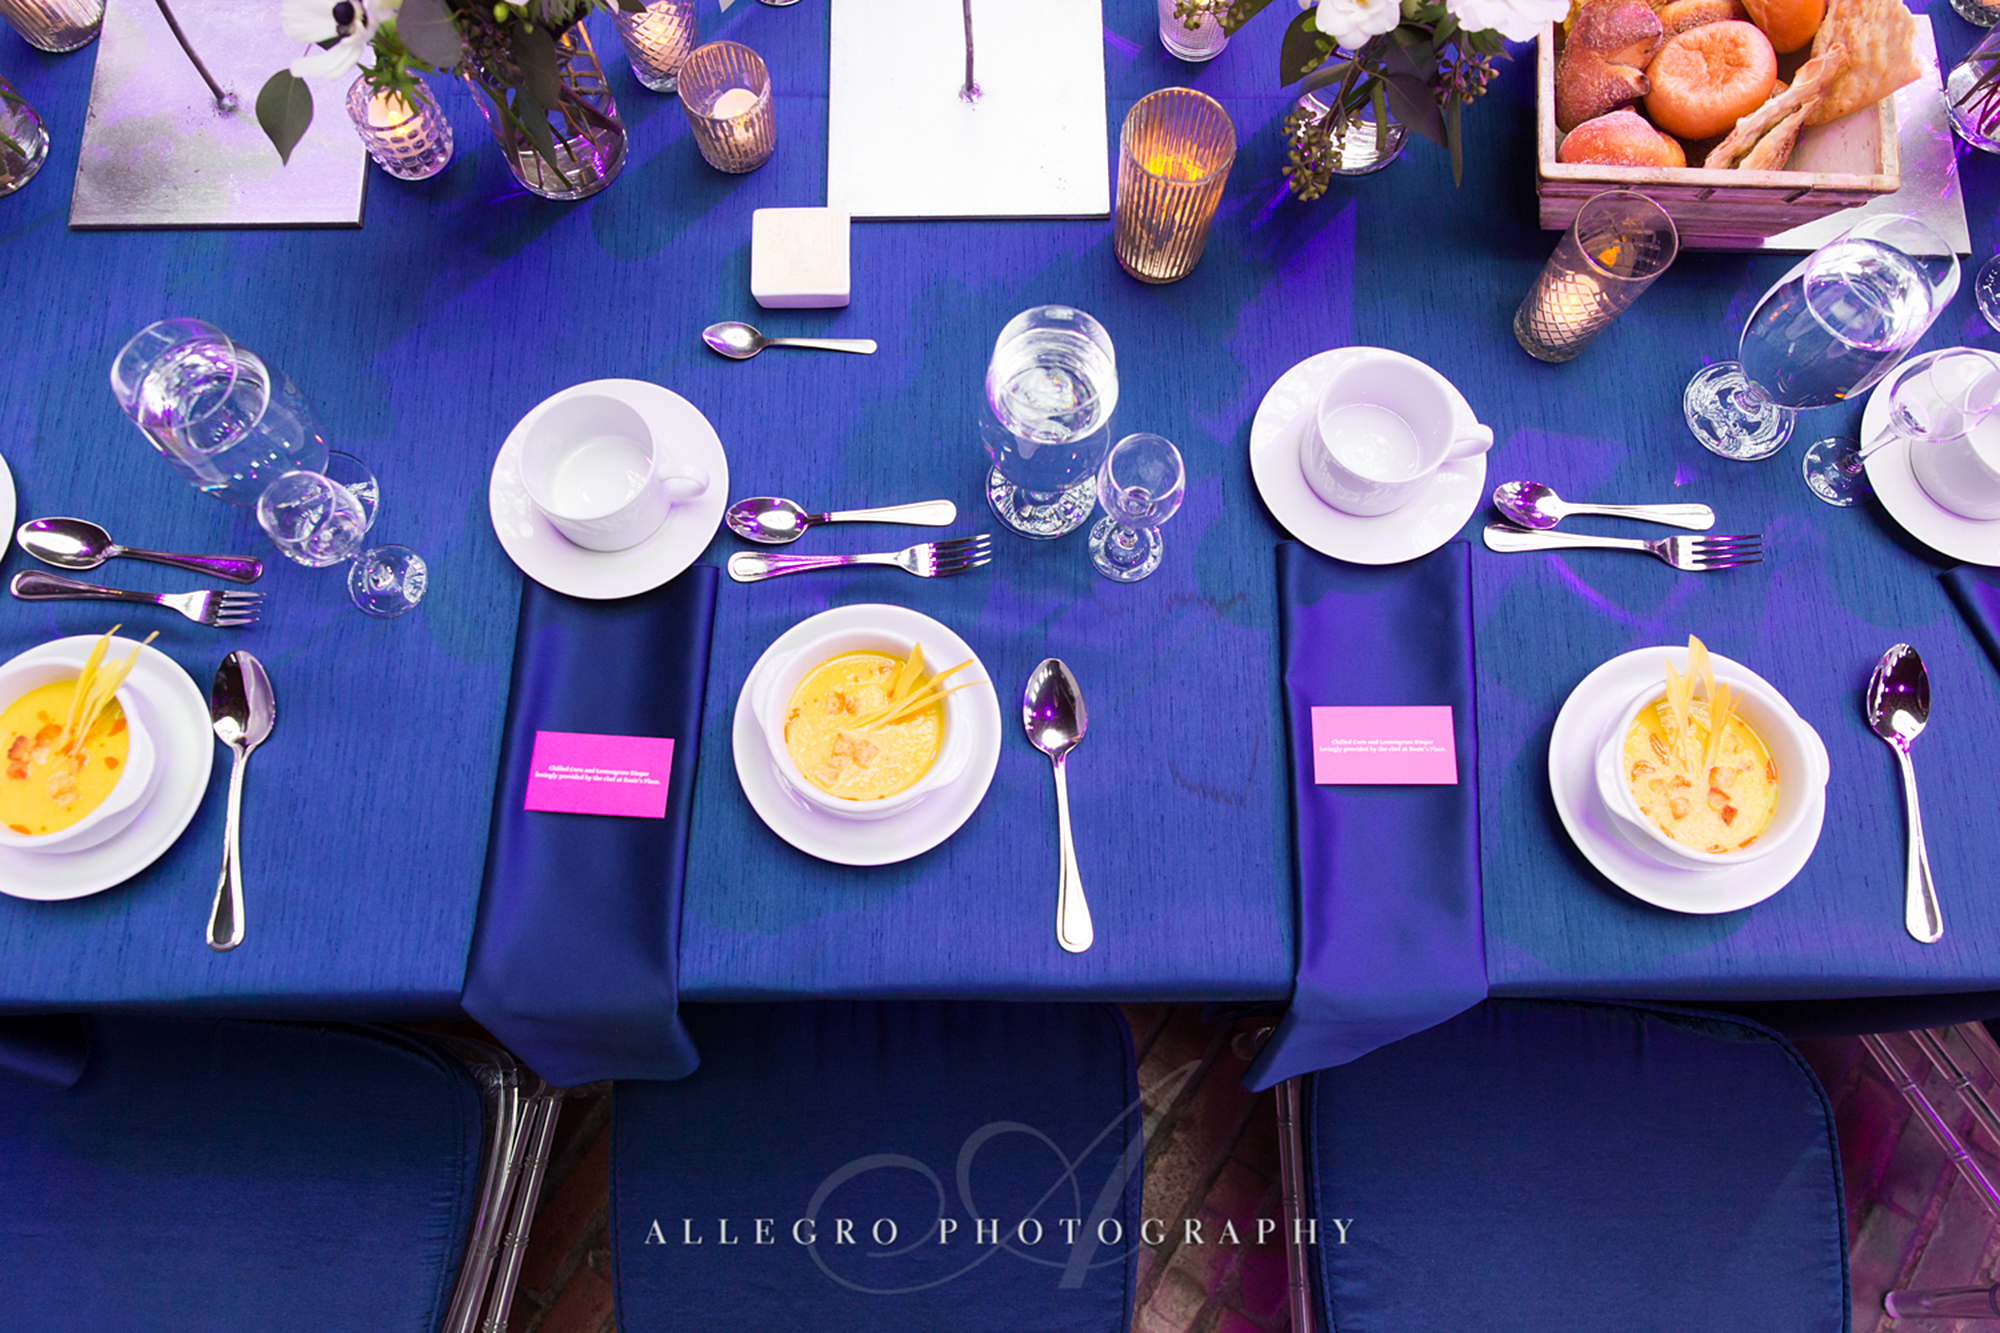 04_Rosies Place Gala Nonprofit Blue Table_AE Events.jpg